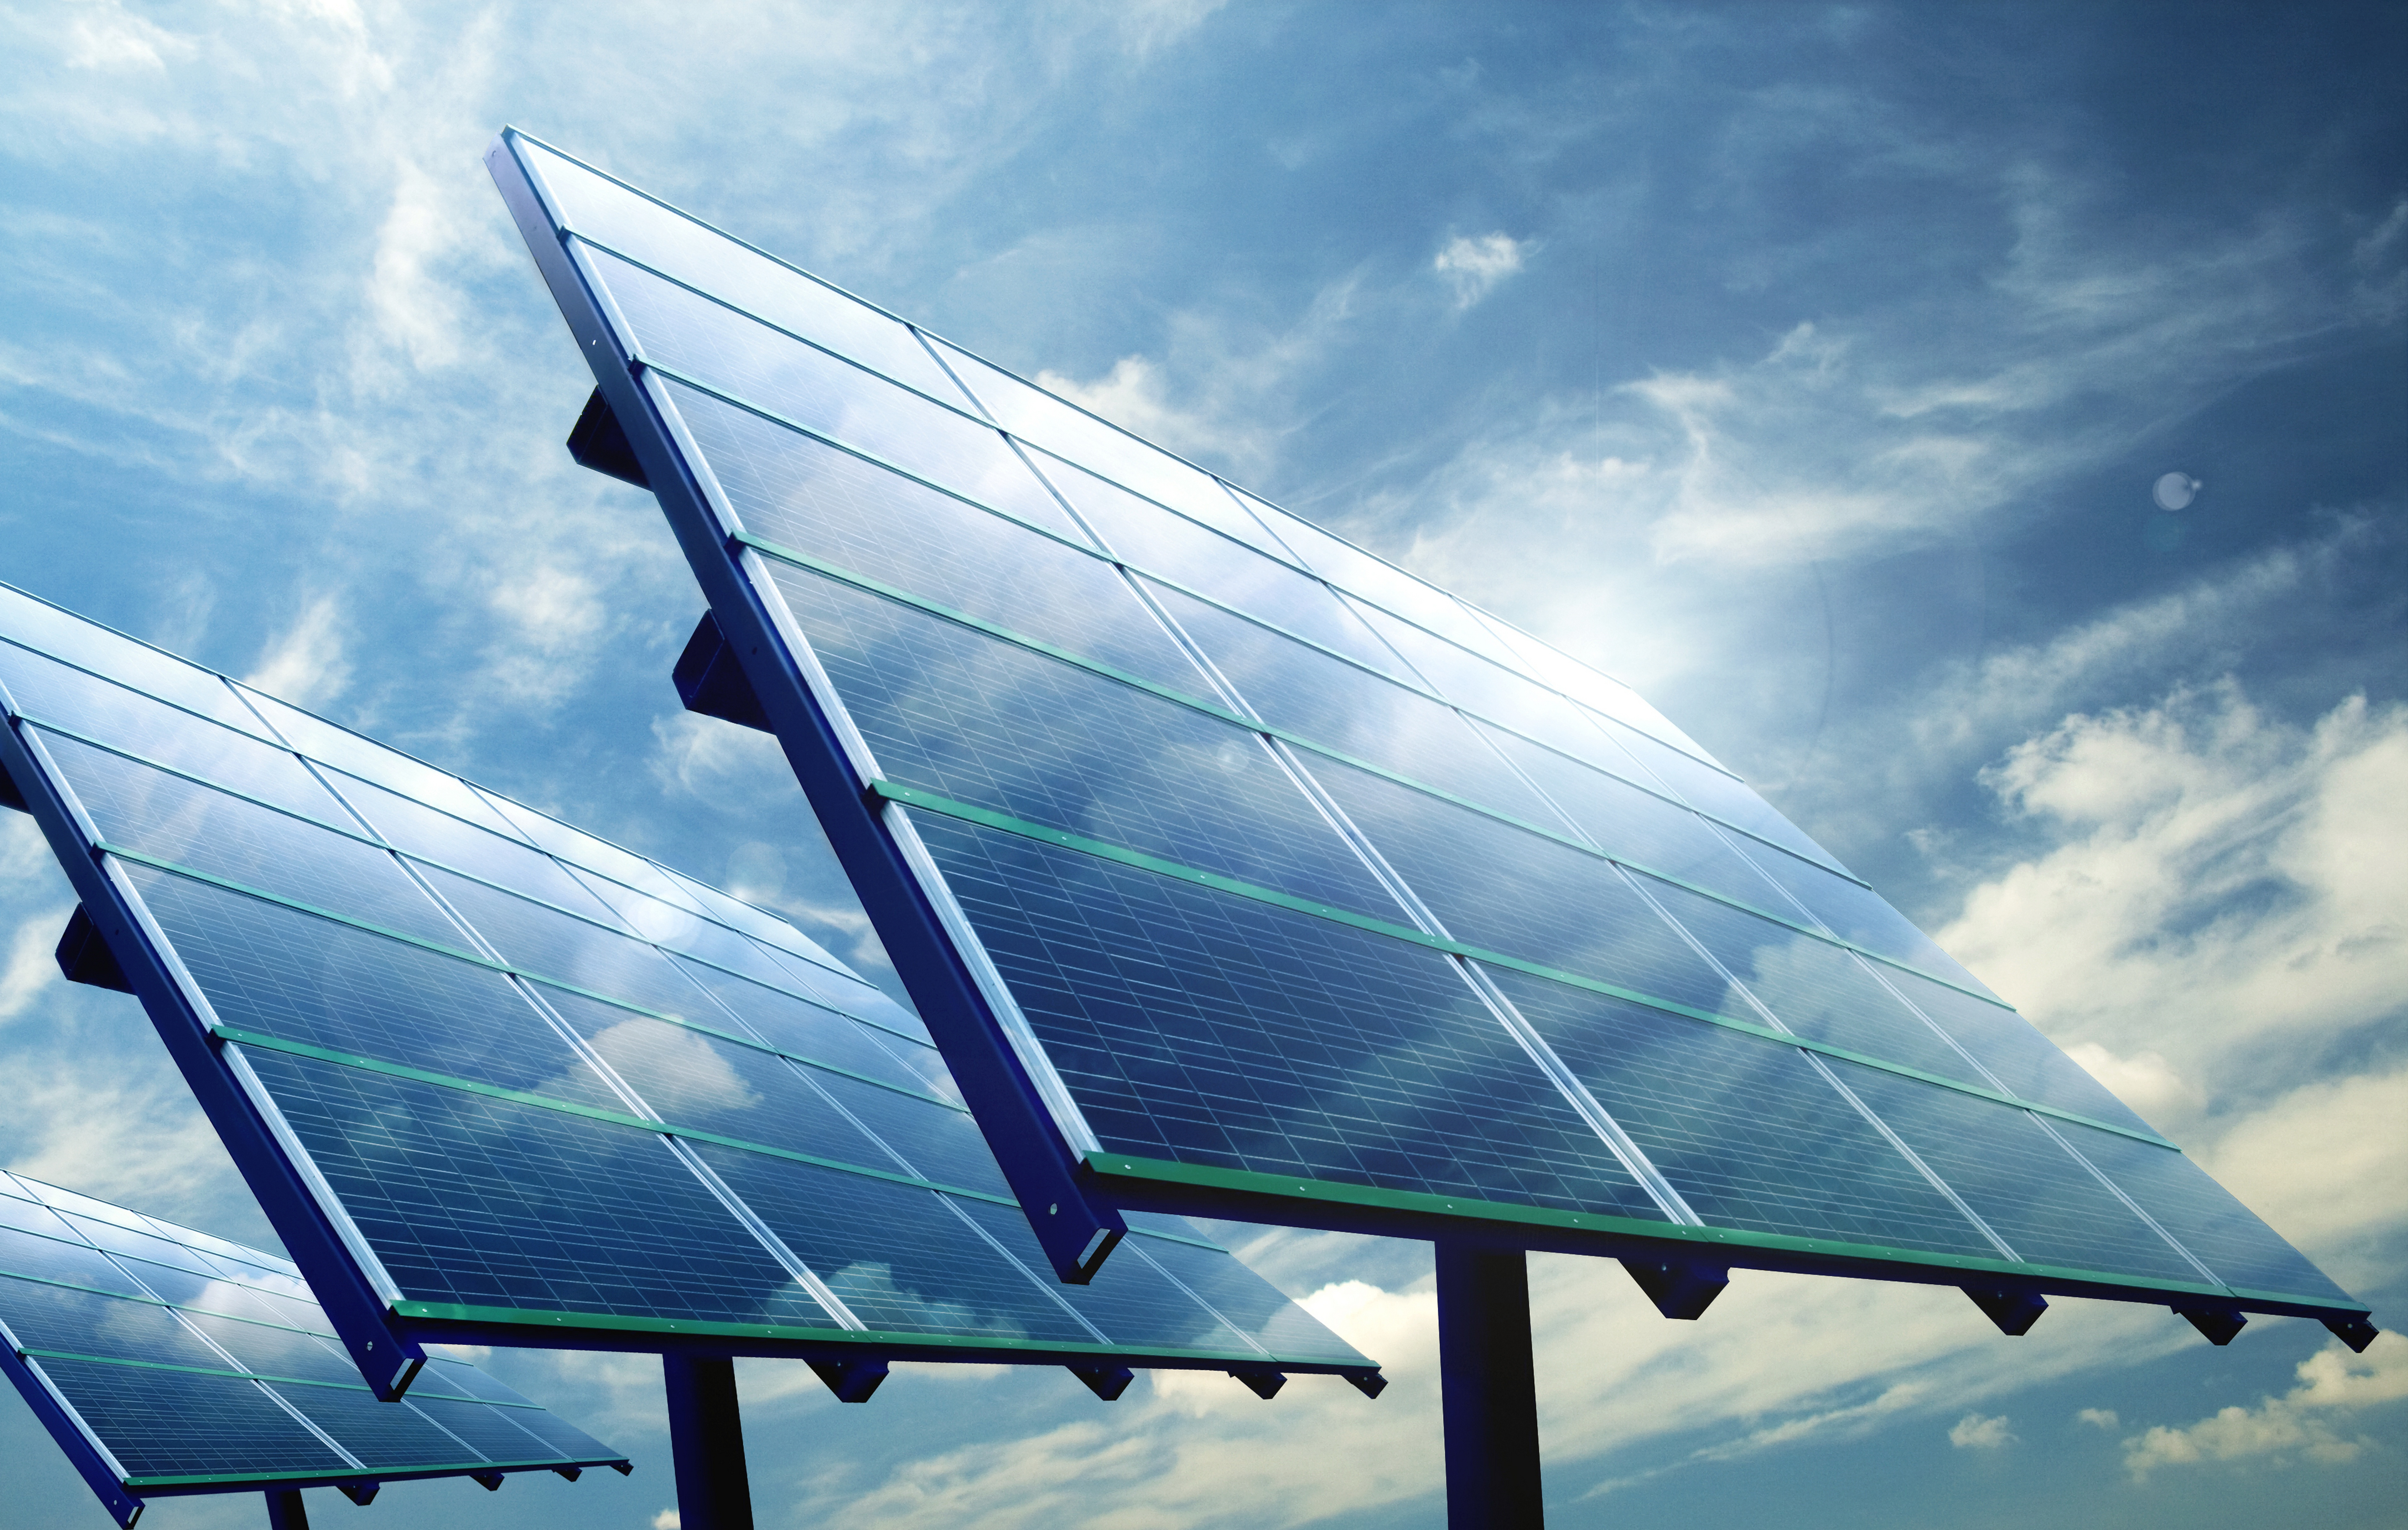 On the insanity of taxing imported solar